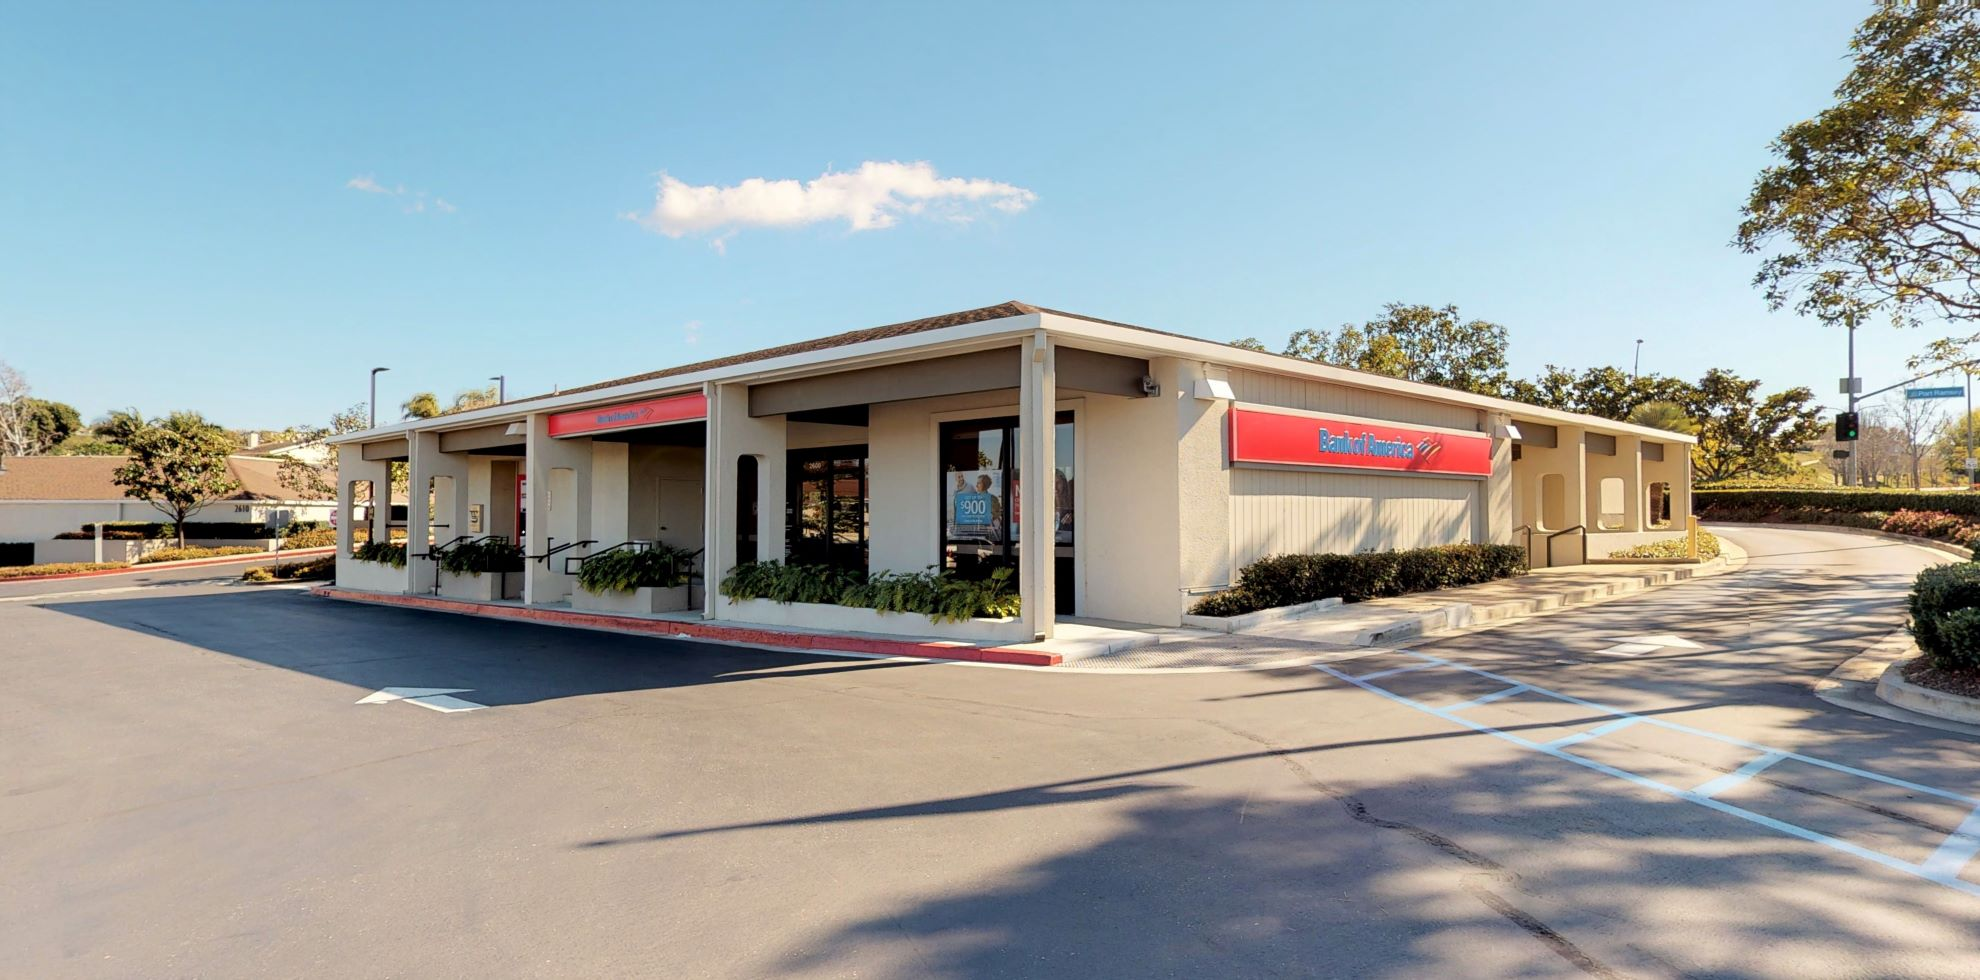 Bank of America financial center with drive-thru ATM | 2600 San Miguel Dr, Newport Beach, CA 92660